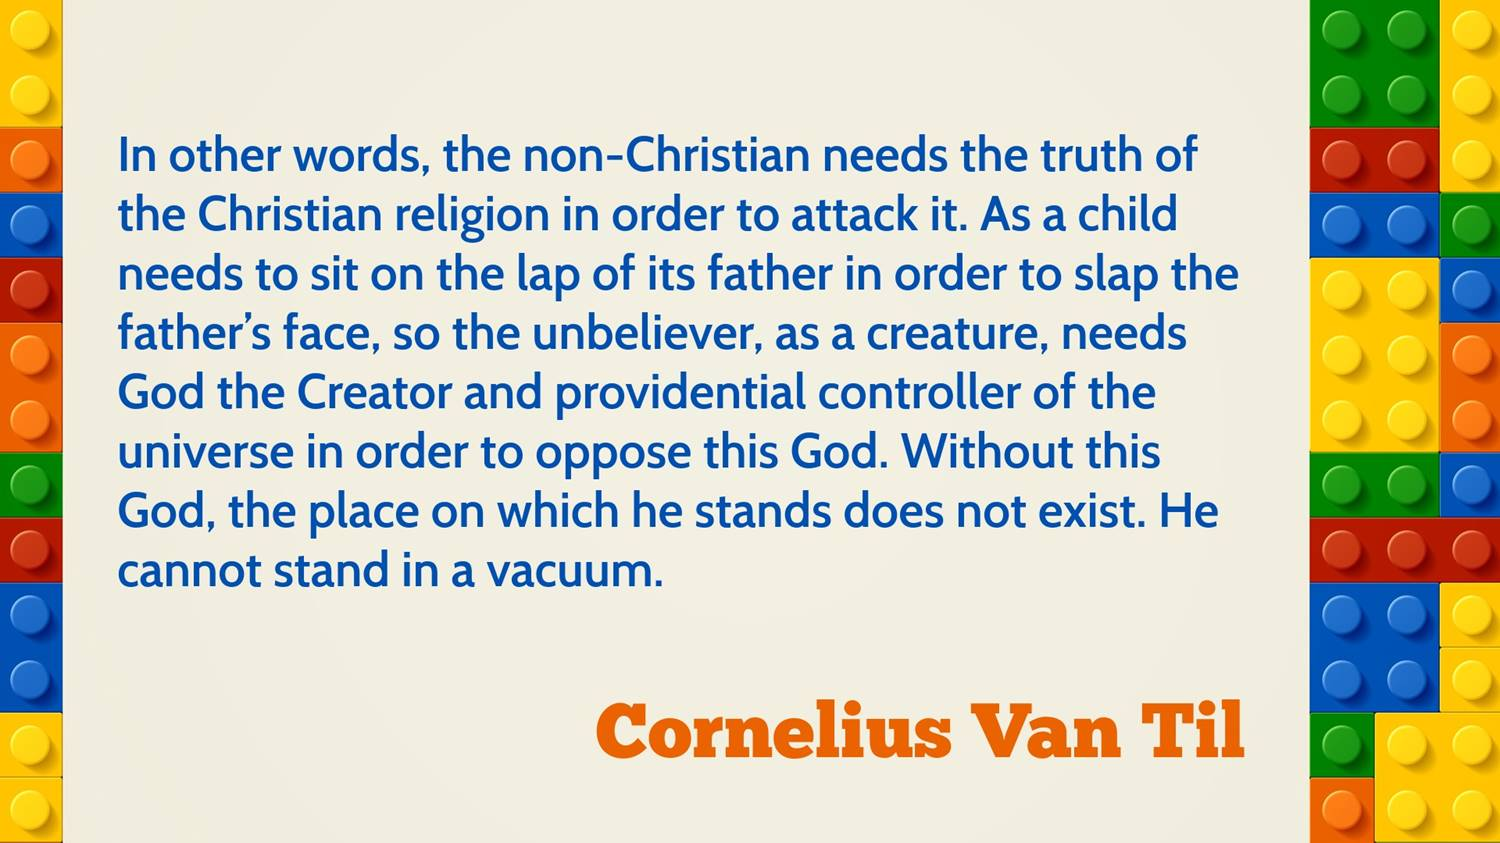 van til antithesis Van til sometimes extended his antithesis language to non-reformed believers: illegitimately in my opinion reformed believers have no fundamentals in common with stuart hackett e j carnell's apologetic method requires the destruction of christianity and leads to the rejection of the whole body of his christian beliefs.